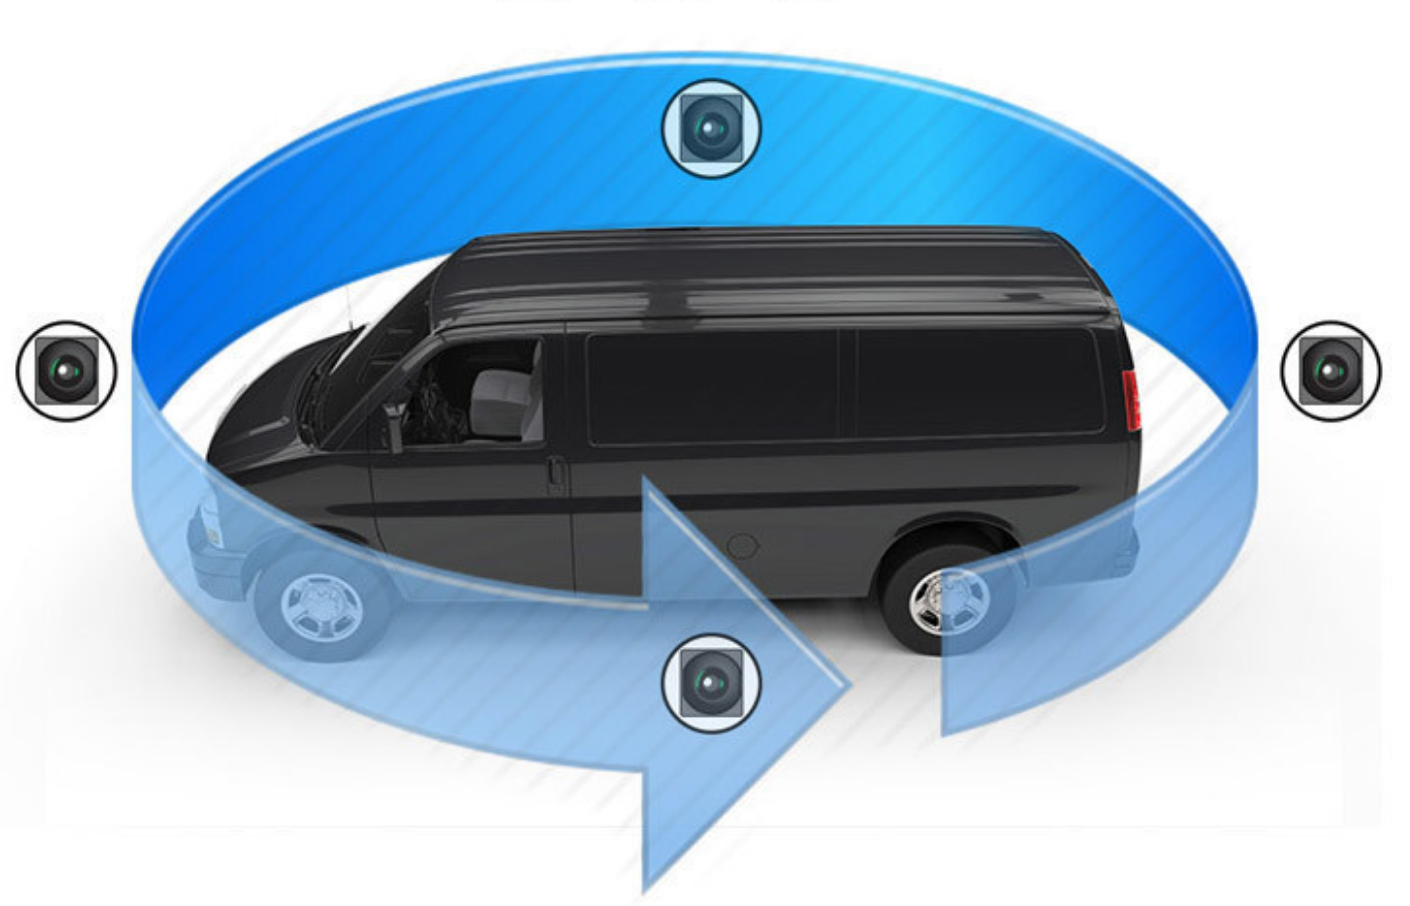 New 360° Surround View Camera System for Fleets